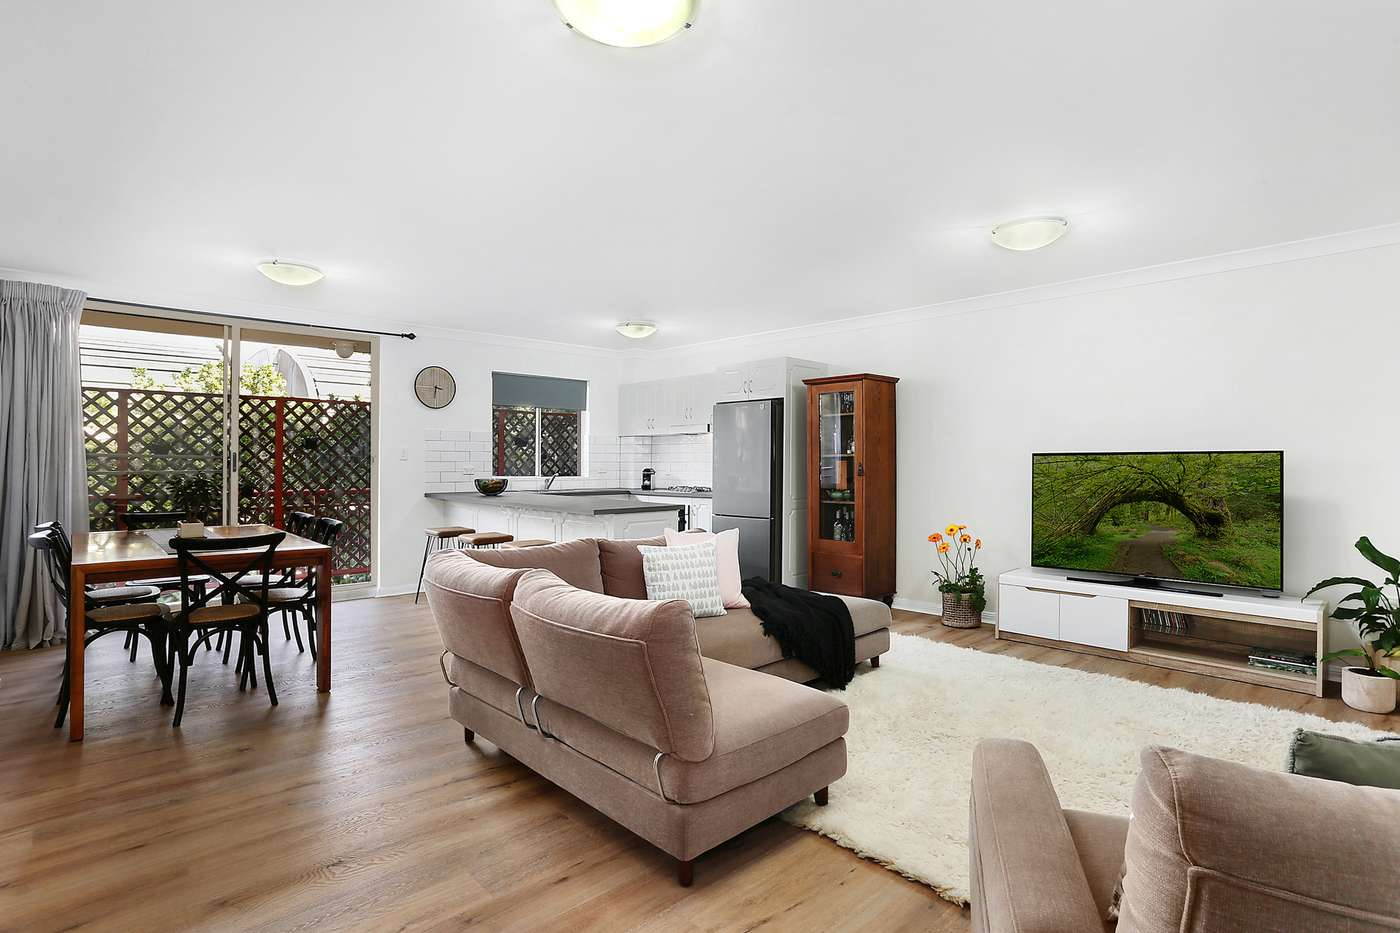 Main view of Homely apartment listing, 9/46 Carnarvon Street, Silverwater, NSW 2128